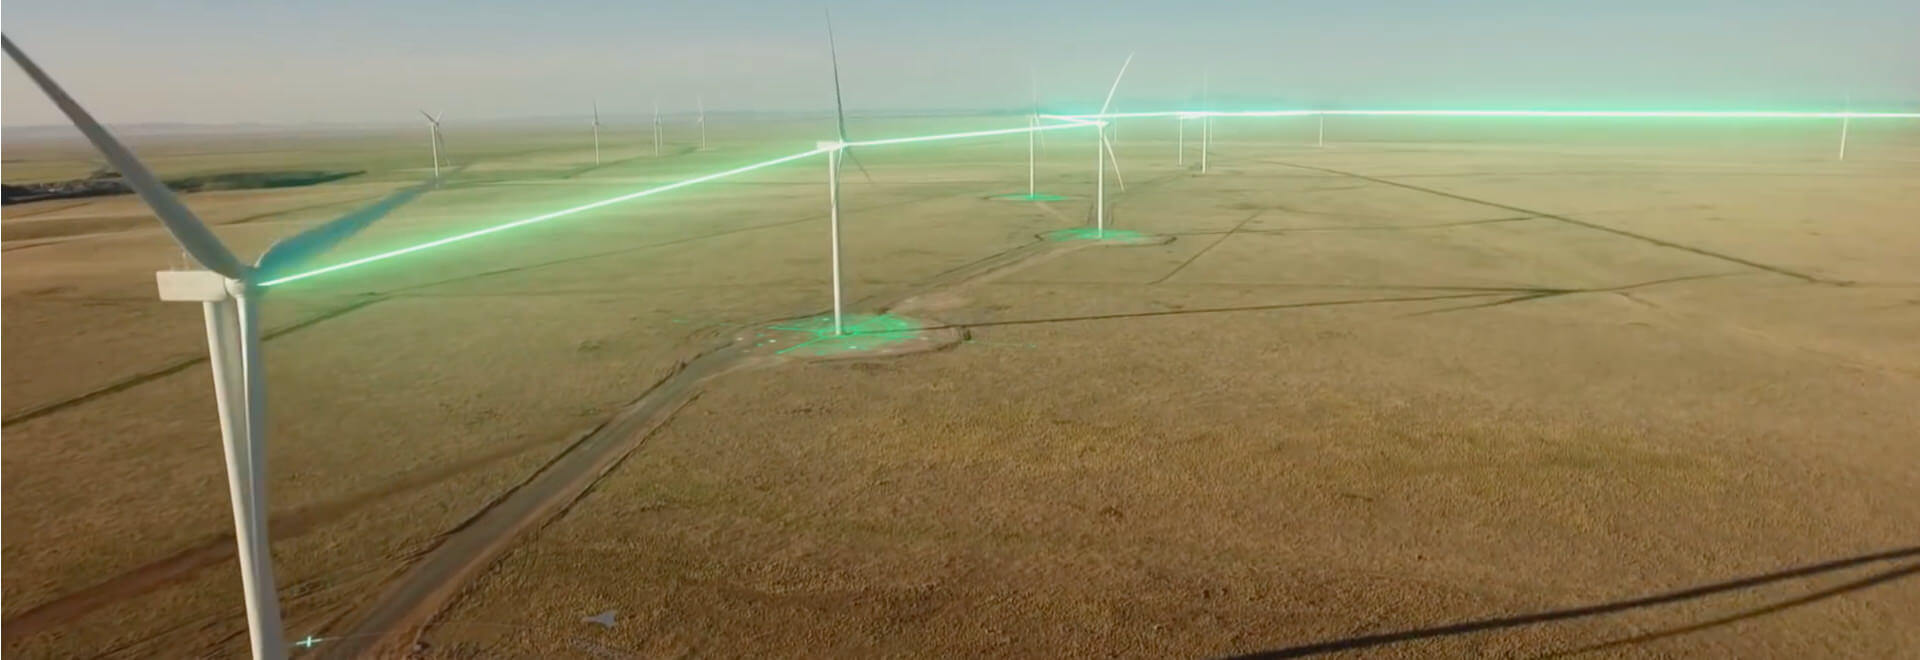 Iberdrola, the utility of the future - Iberdrola group has made sweeping changes in the last 15 years, clearly staying one step ahead of the energy transition to face the challenges of climate change and the need for a clean, reliable and smart business model.